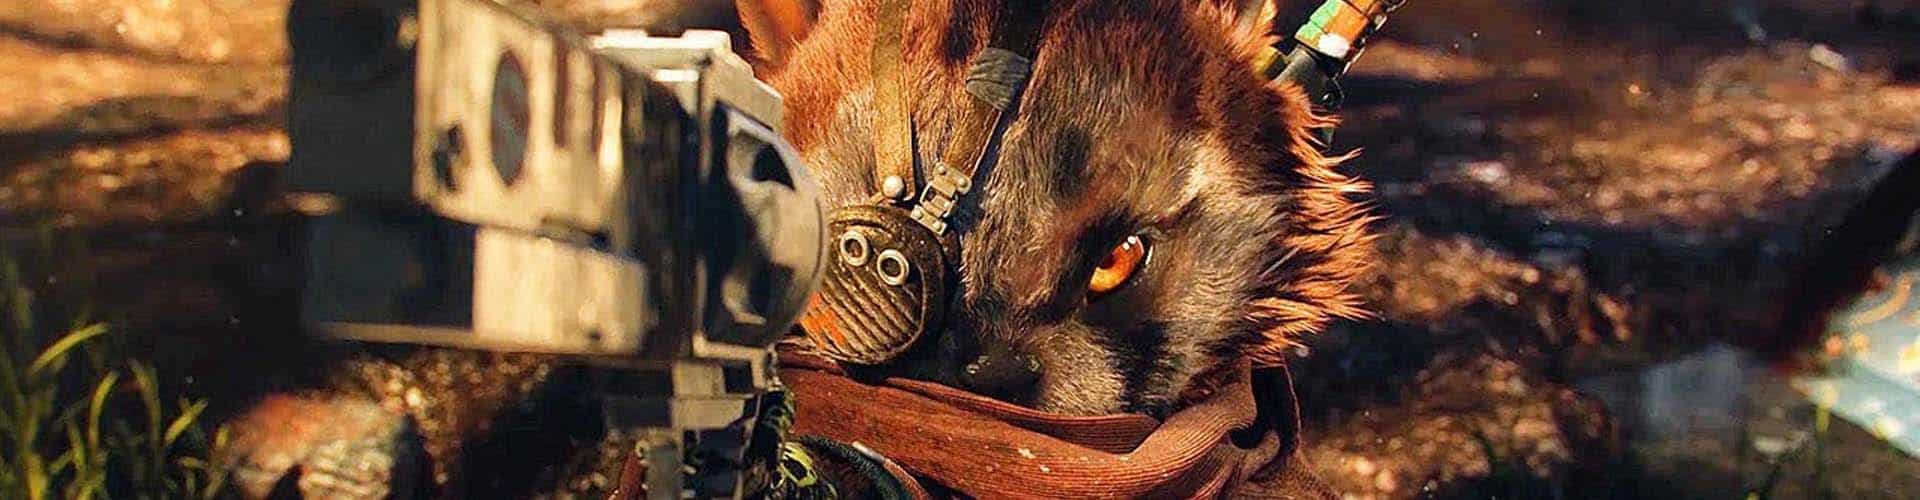 Biomutant Release Date, News, Trailer and Rumors